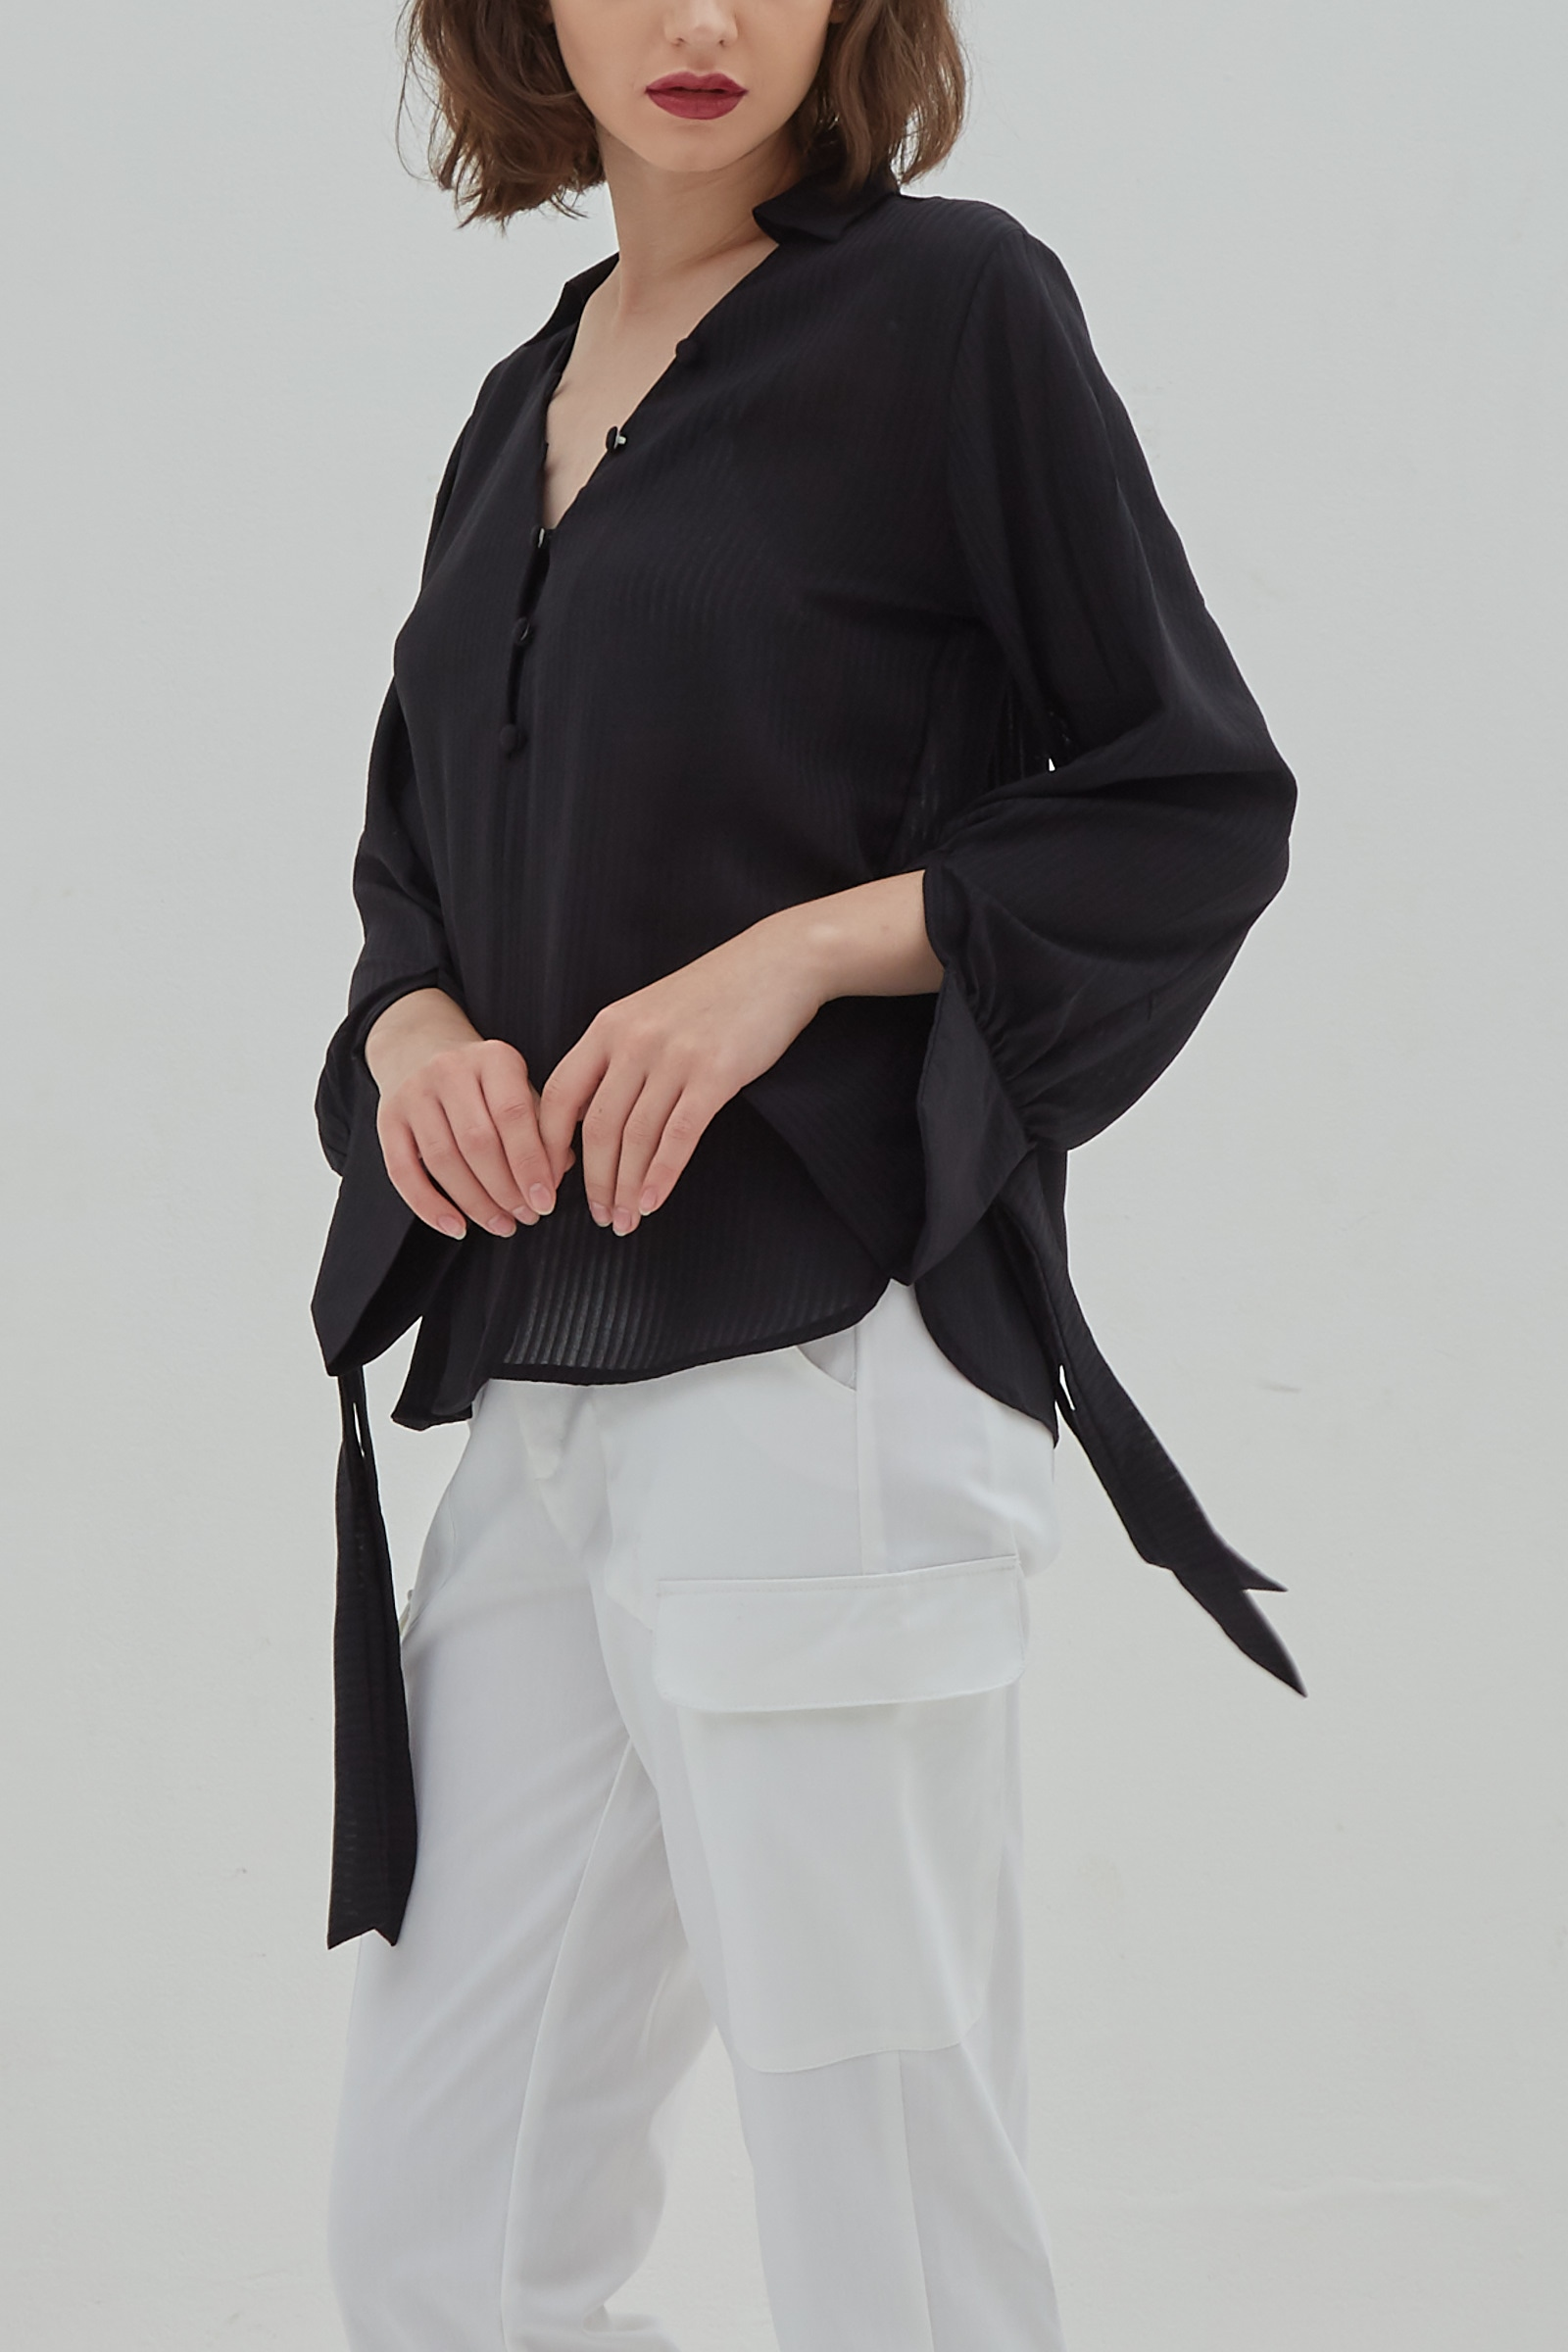 Picture of Gladys Blouse Black